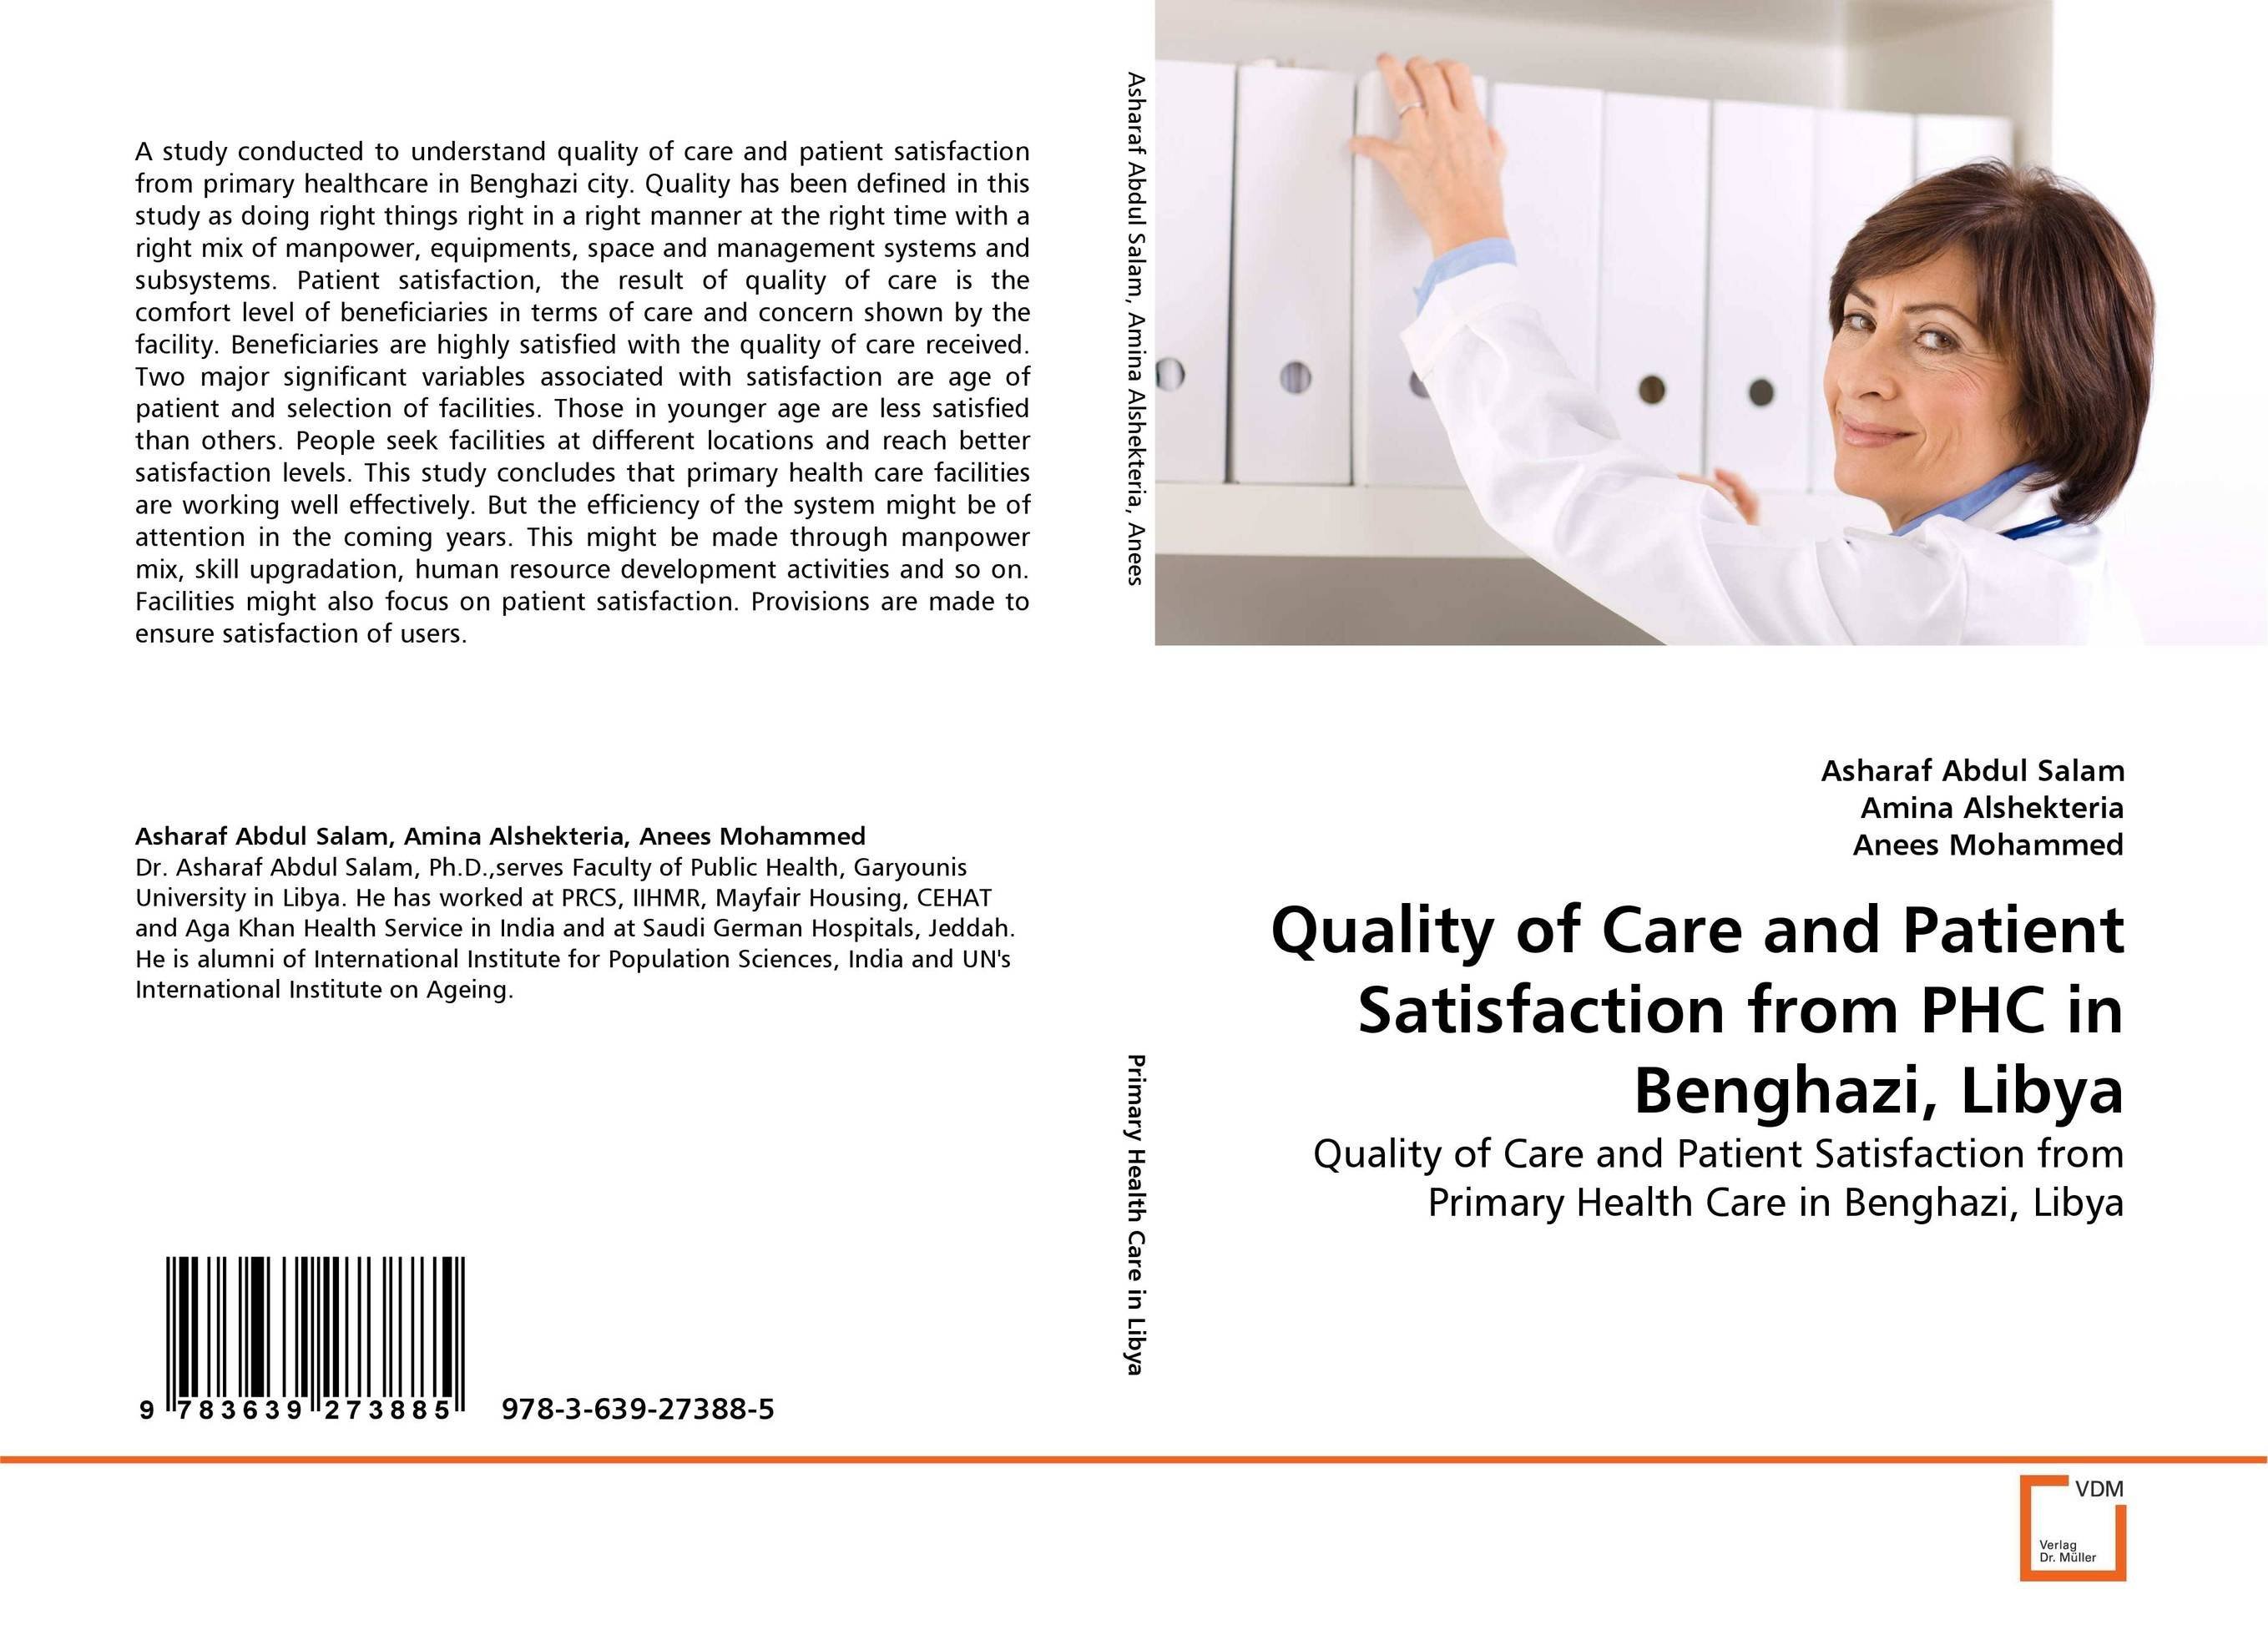 Quality of Care and Patient Satisfaction from PHC in Benghazi, Libya analysis of patient satisfaction